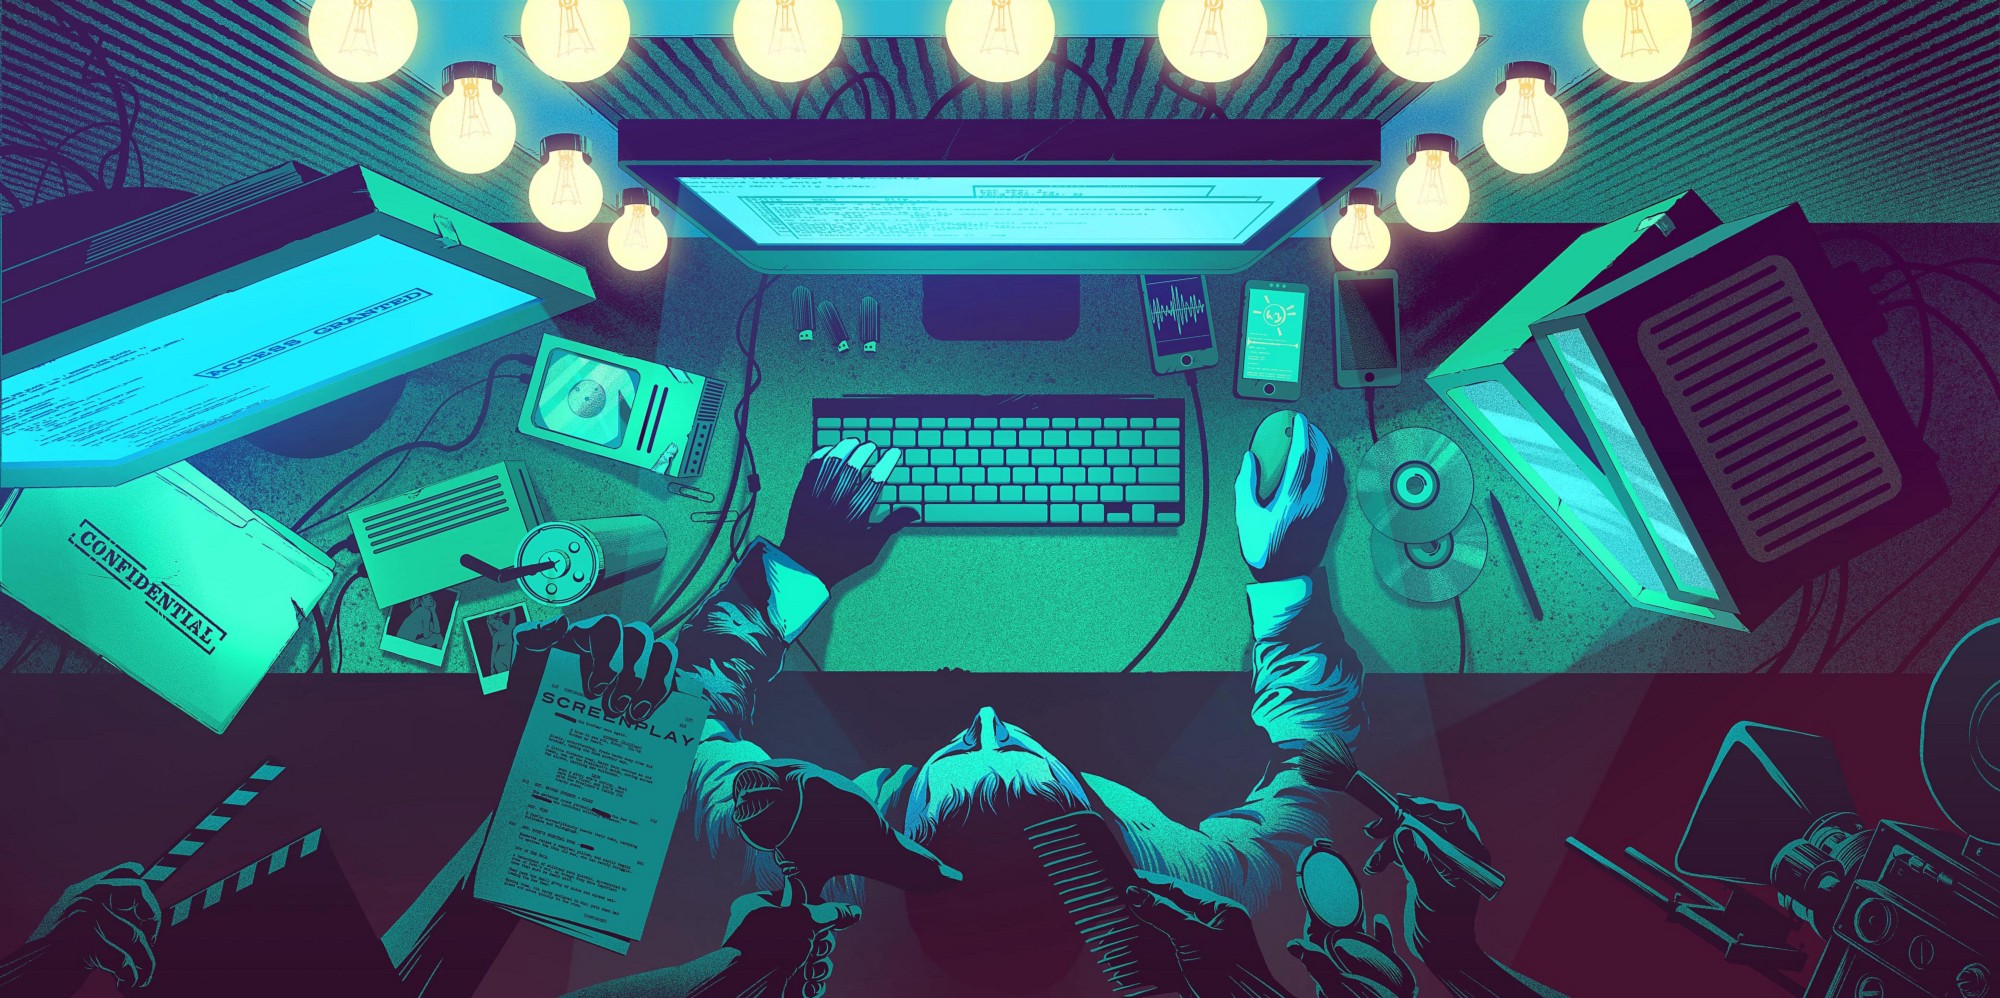 Hacking Wallpapers Hd Backgrounds